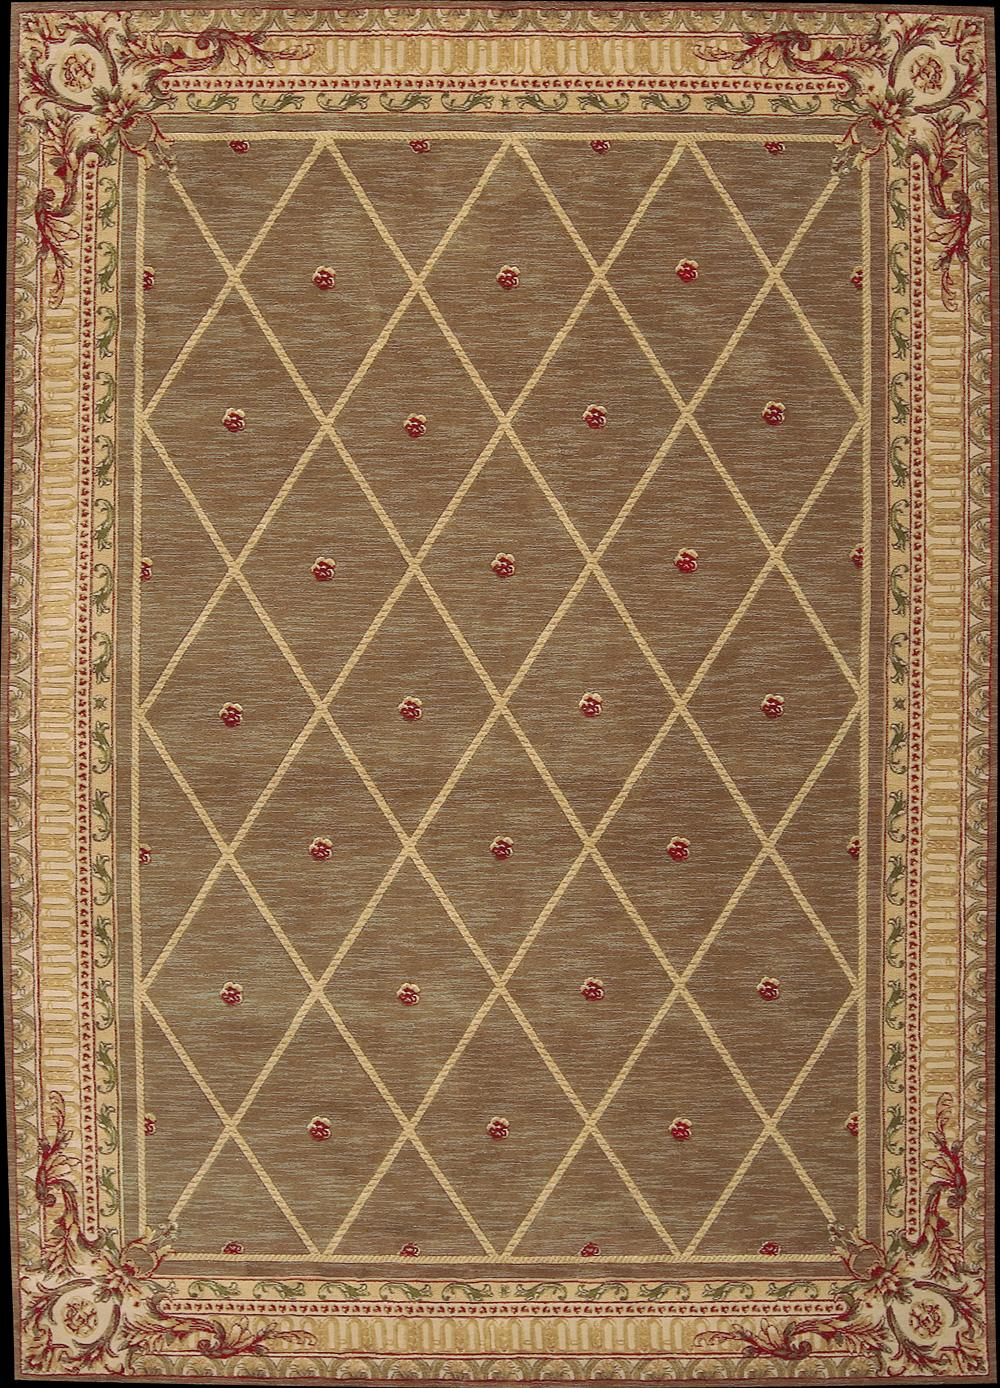 "Nourison Ashton House Area Rug 9'6"" x 13' - Item Number: 32641"